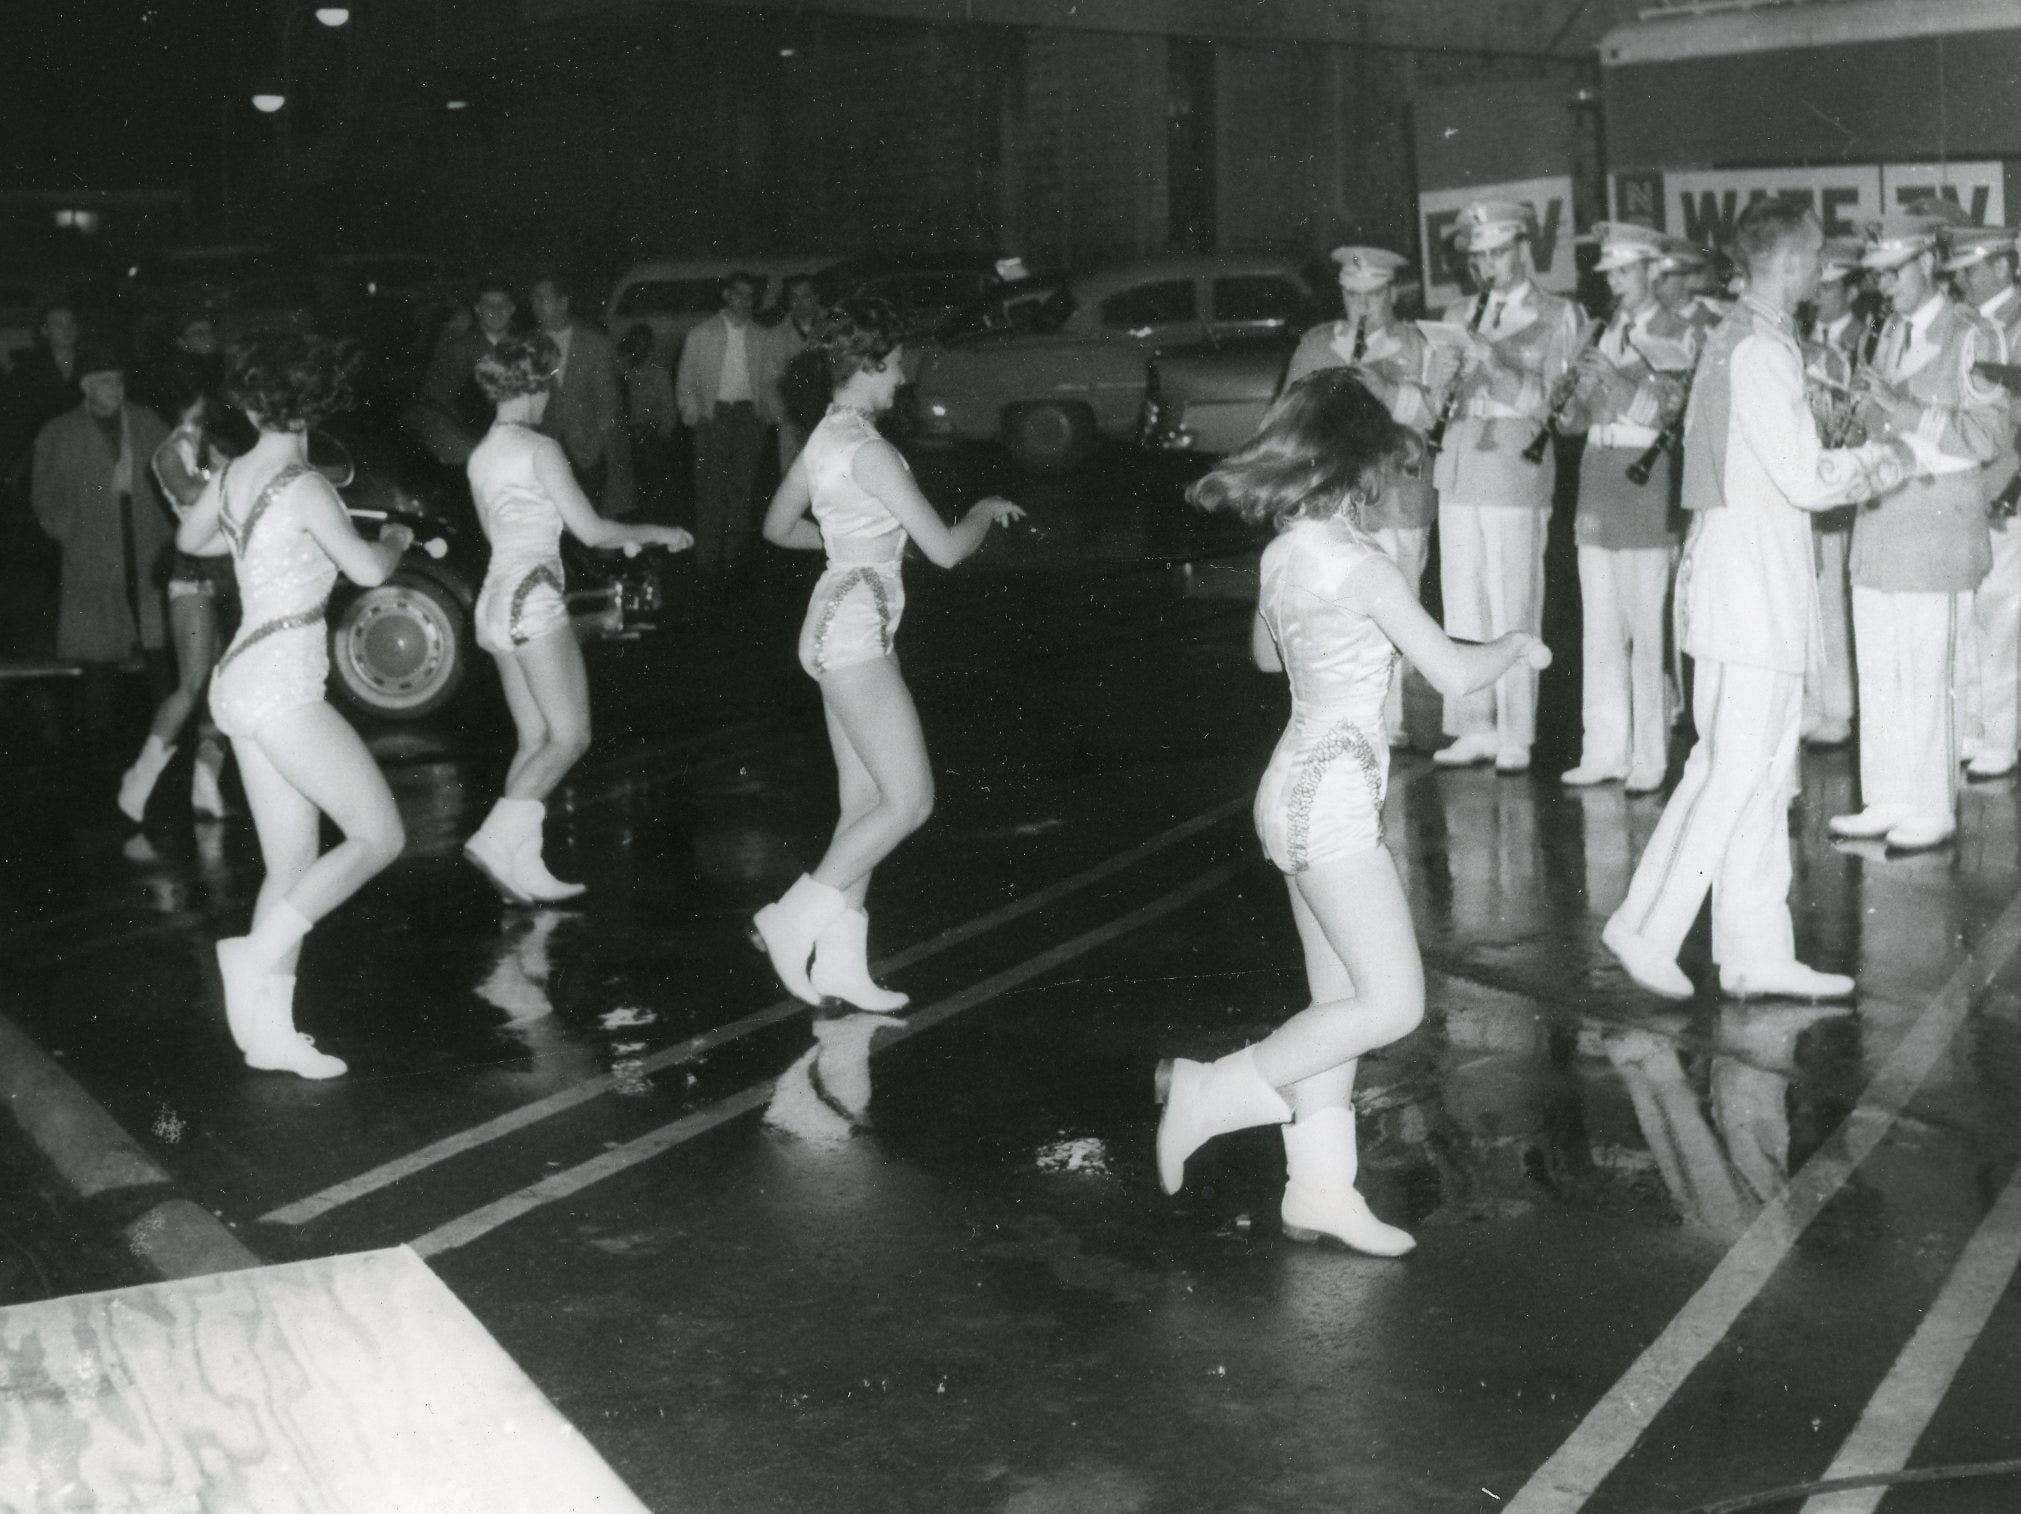 UT majorettes perform with the band, March, 1960.